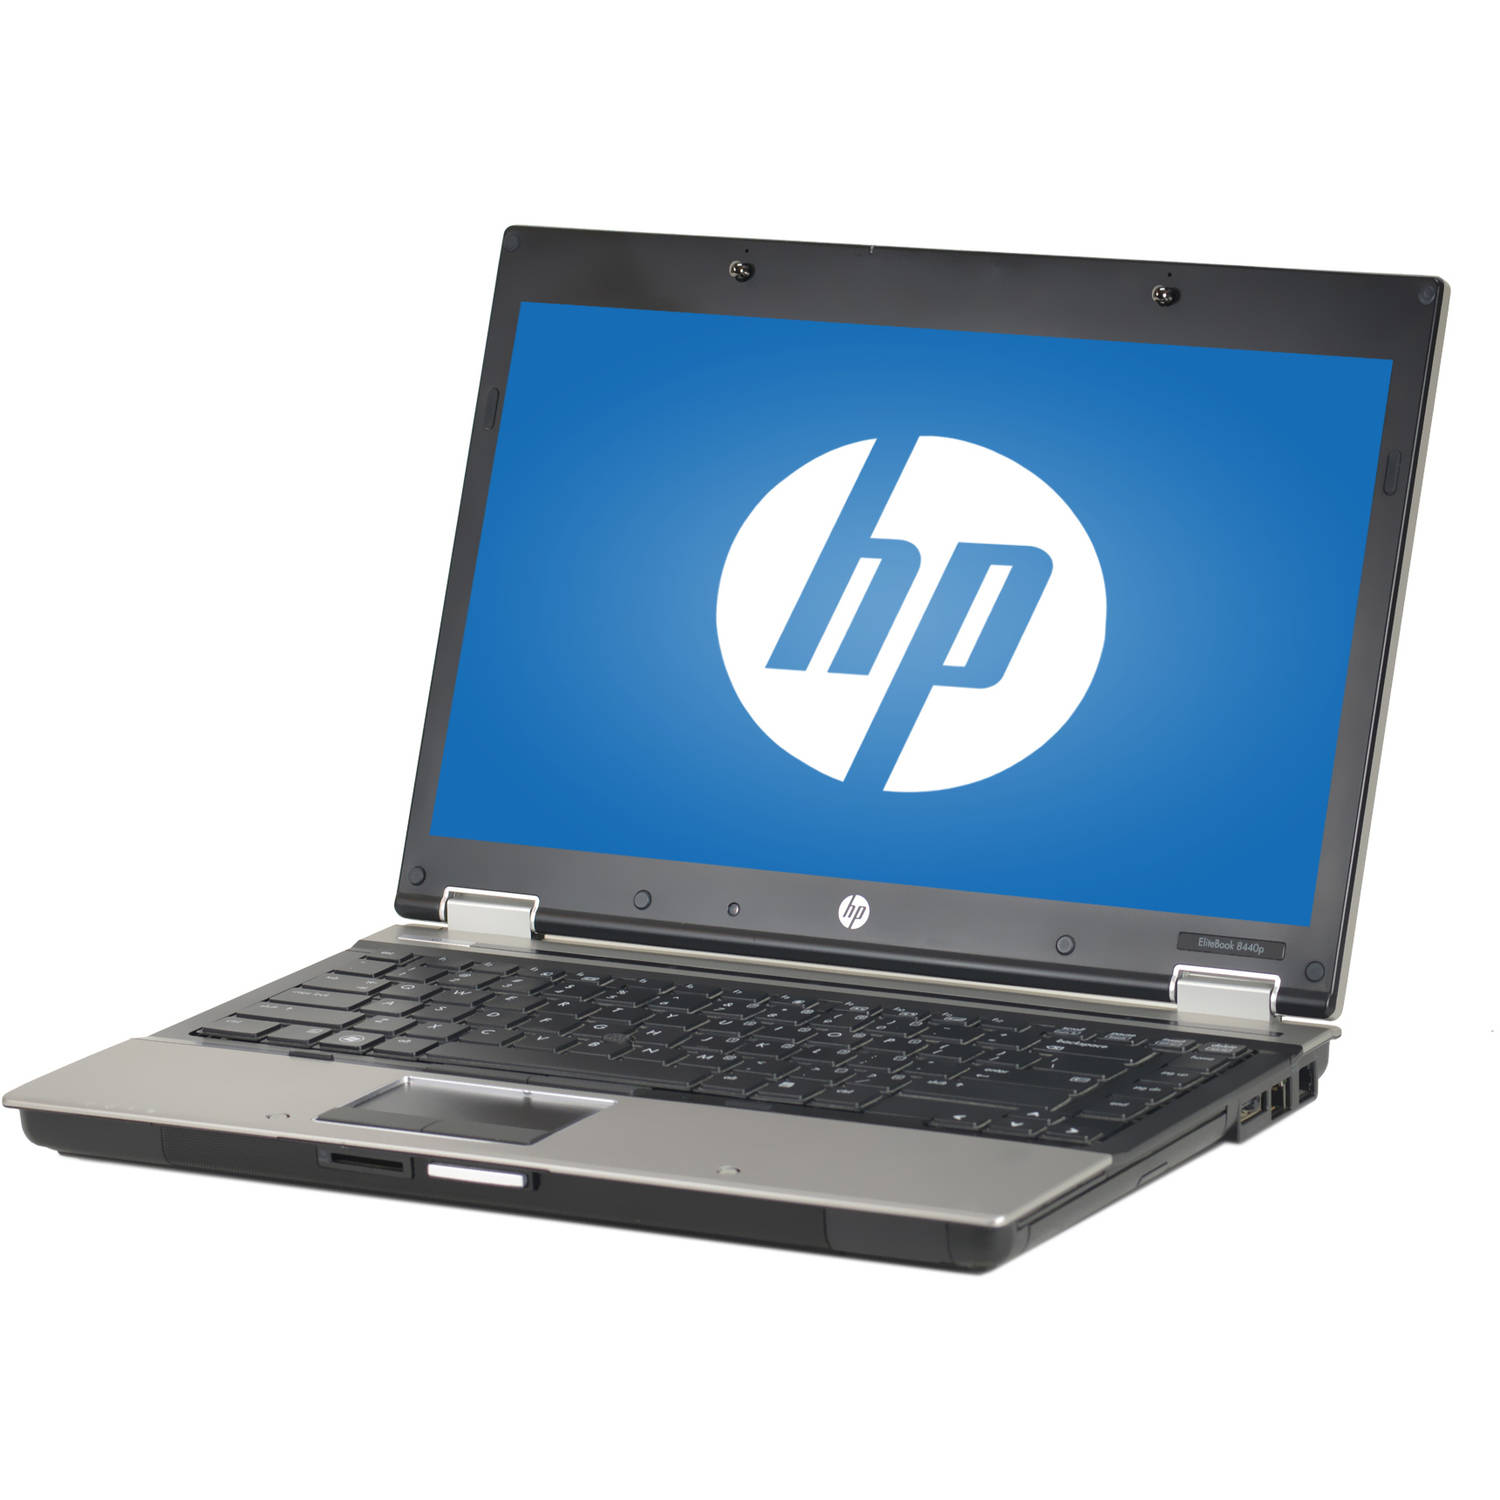 "Refurbished HP Silver 14.1"" EliteBook 8440P Laptop PC with Intel Core i5-520M Processor, 8GB Memory, 256GB Solid State Drive and Windows 10 Pro"